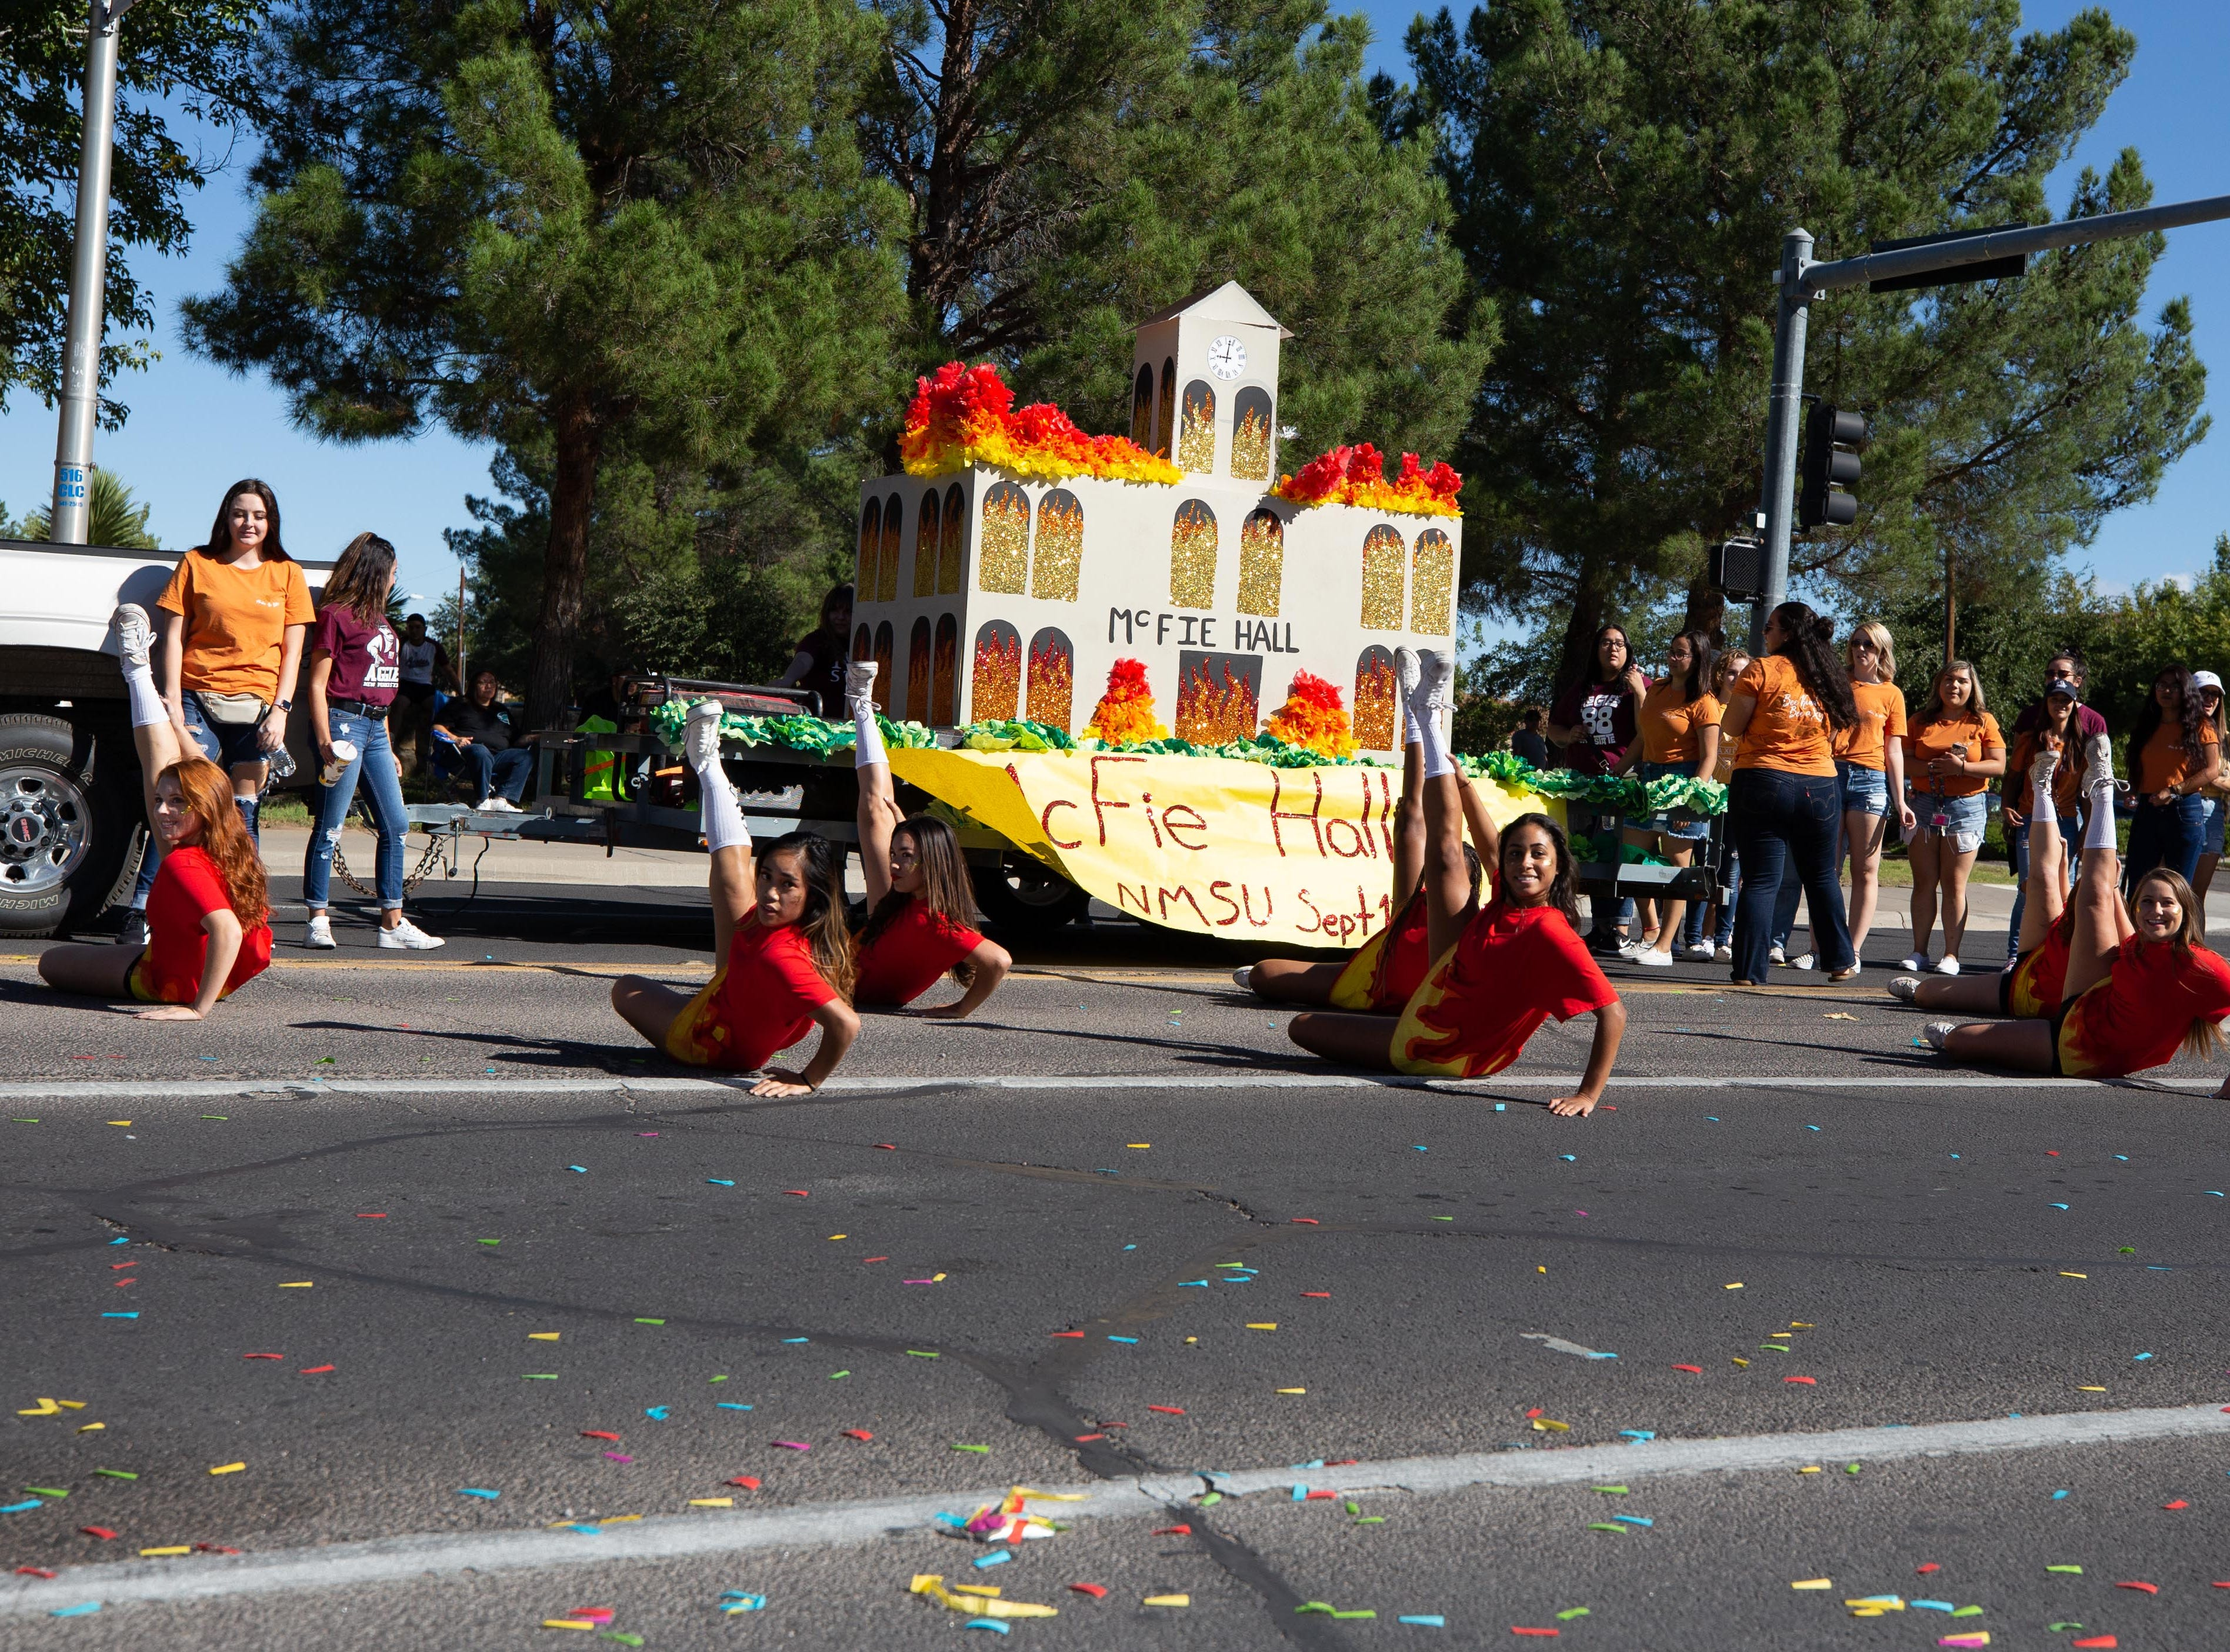 Alpha Xi Delta Sorority float at the NMSU Homecoming Parade on October 6, 2018.